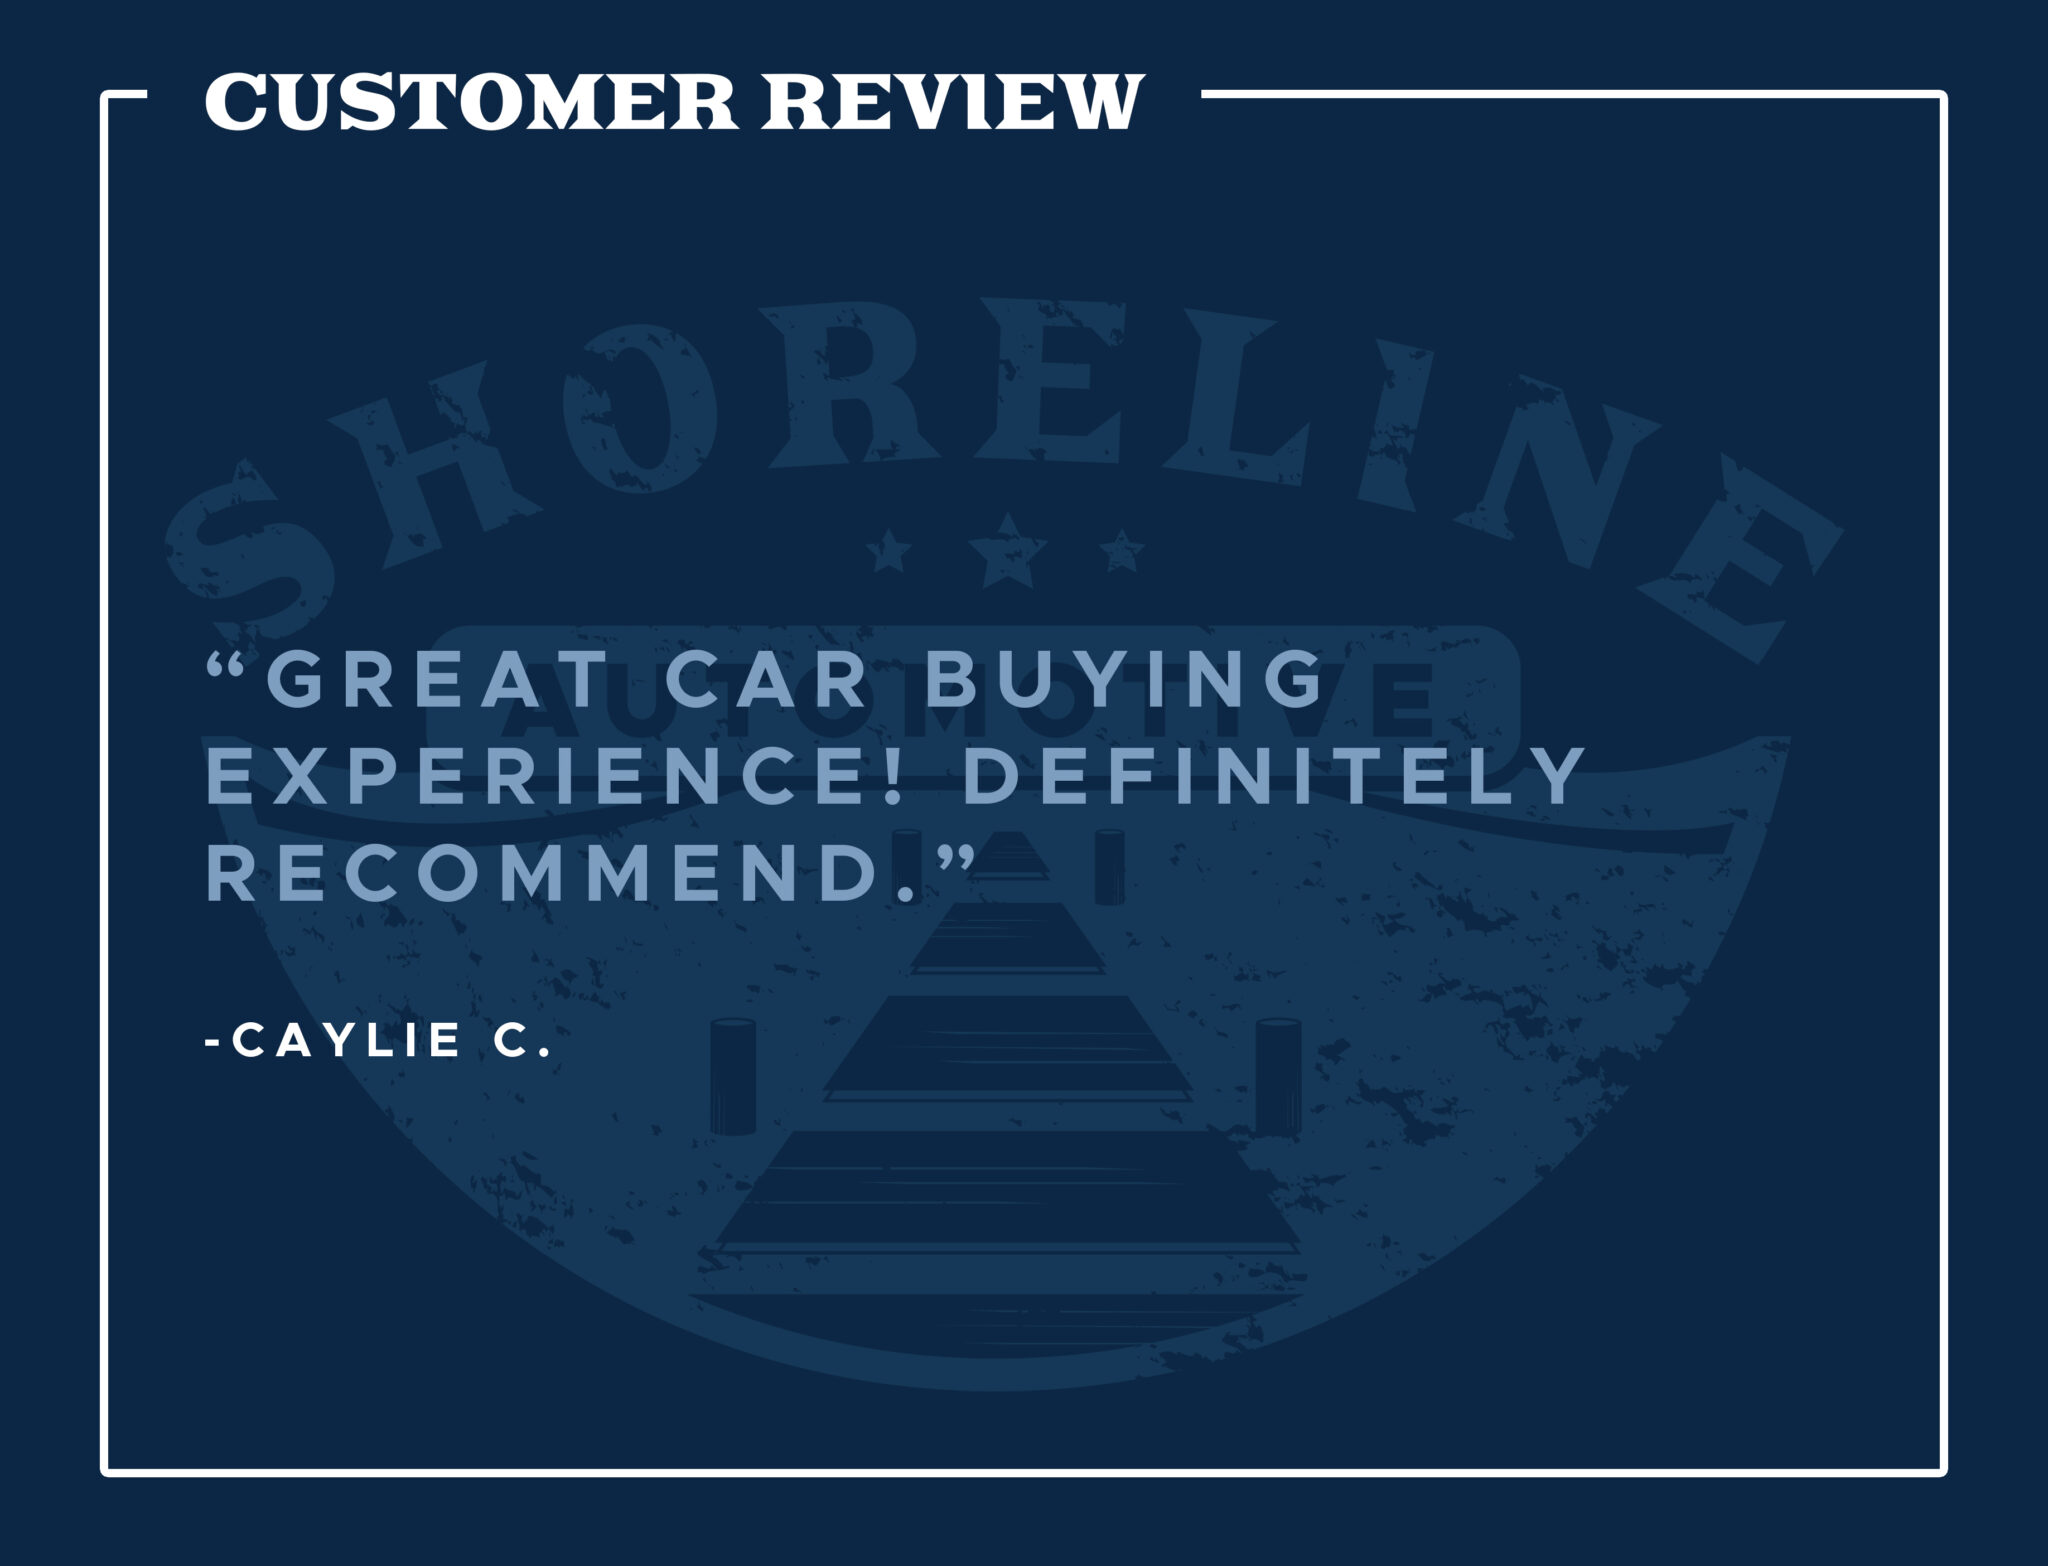 """Customer review of Shoreline Automotive: """"Great car buying experience! Definitely recommend."""" - Caylie C."""